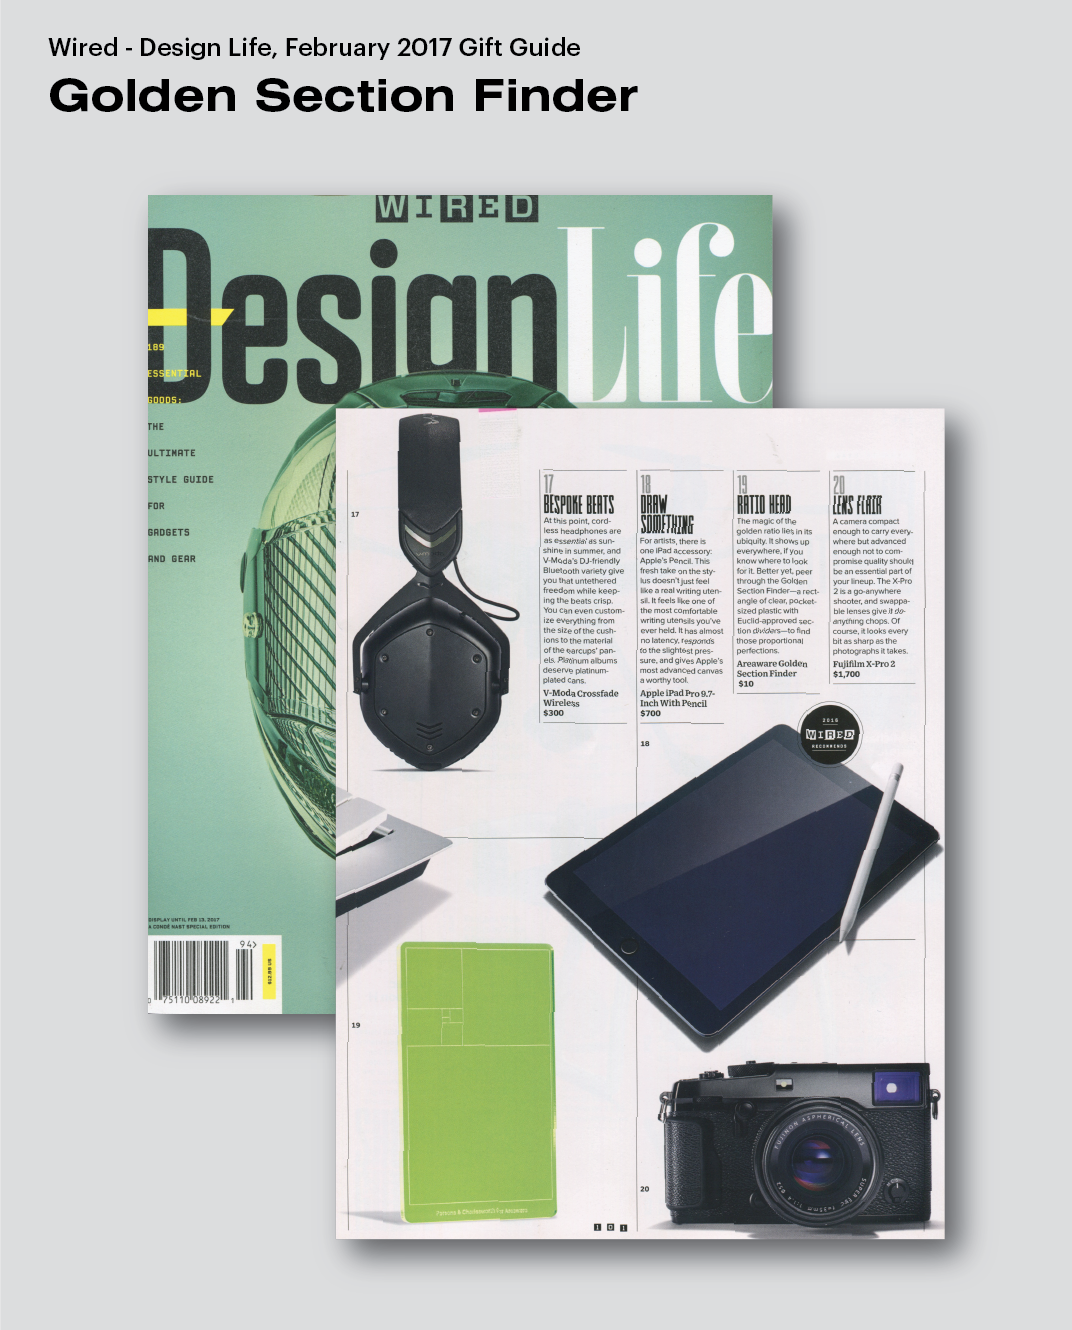 Golden Section Finder featured in Wired Magazine – Areaware